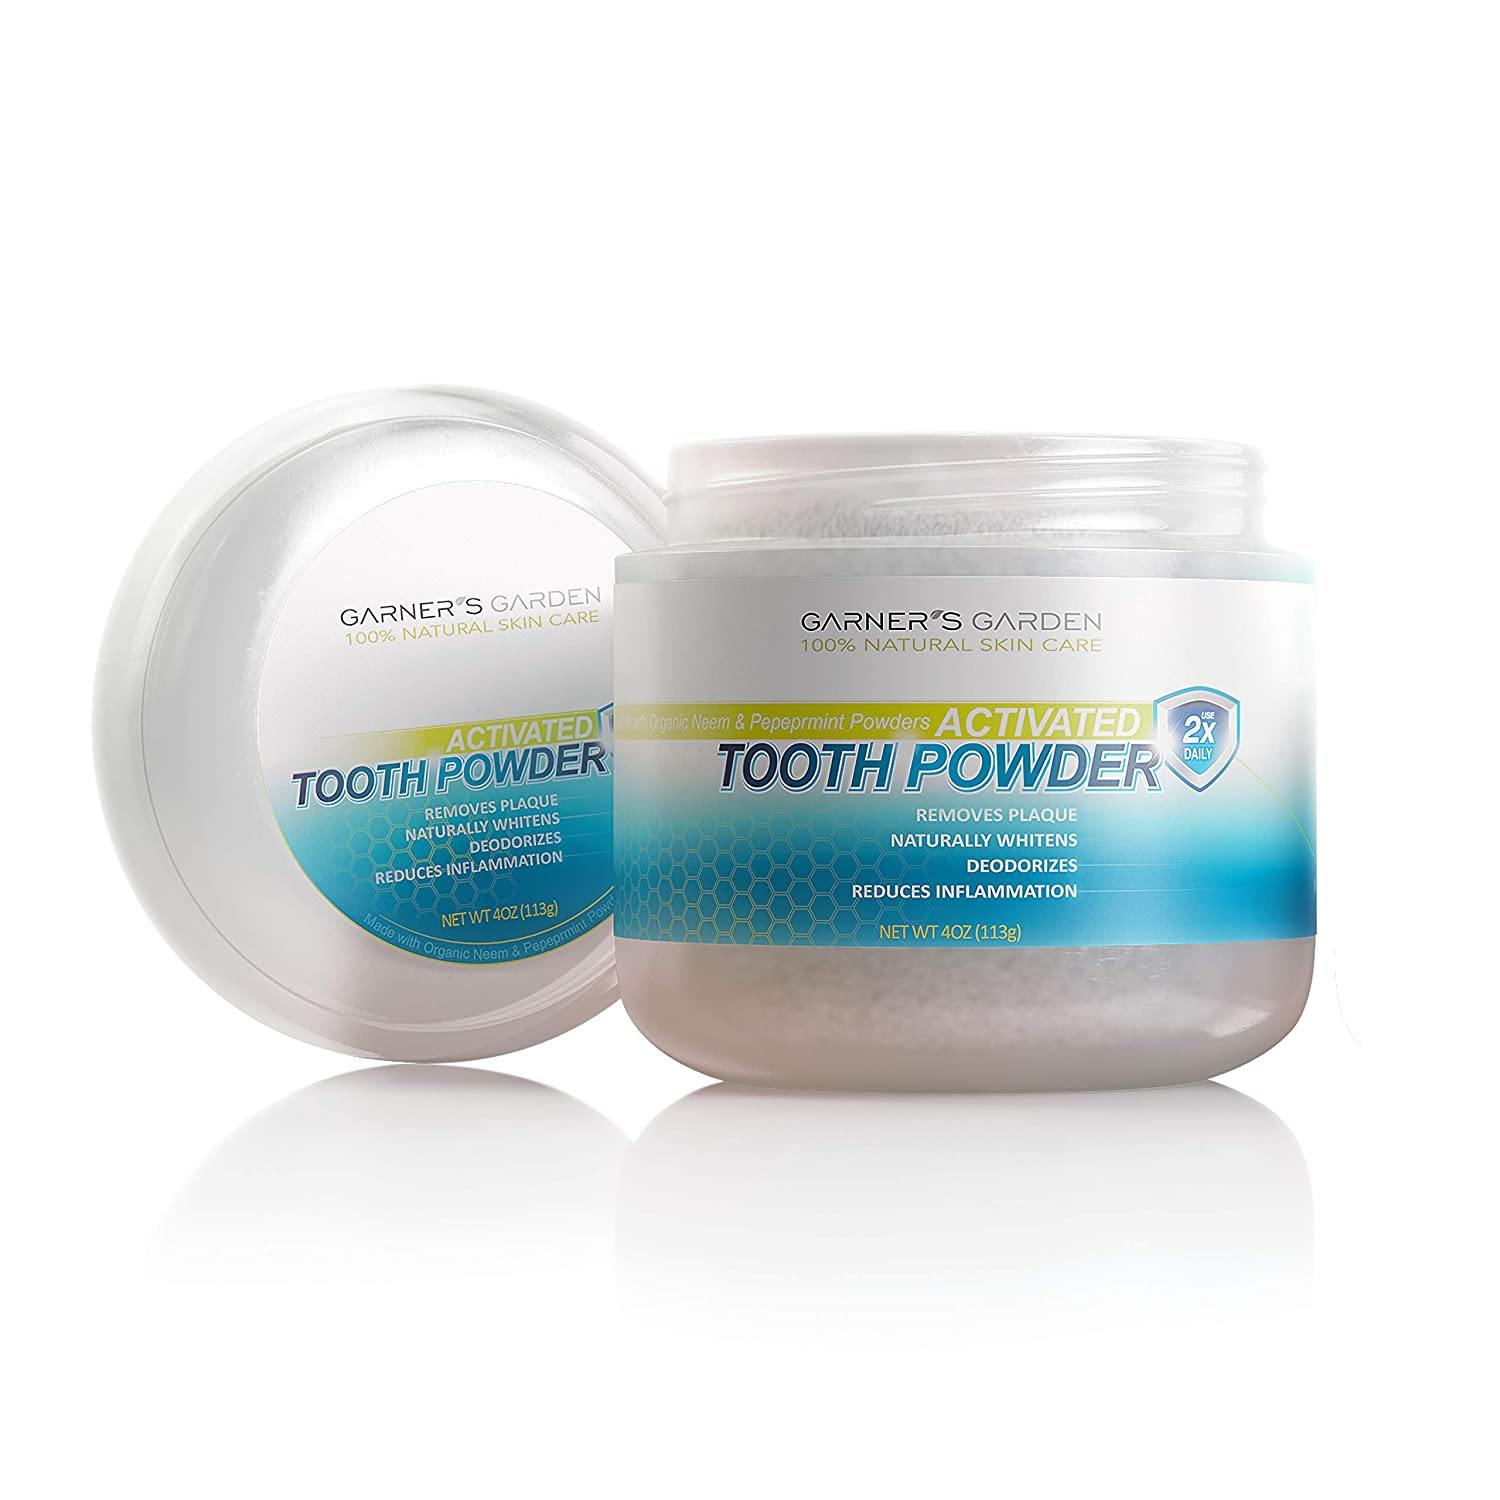 Garner's Garden Activated Tooth Powder 4 oz, Flouride Free, Remineralizes, Removes Plaque, Naturally Whitens, Deodorizes, Reduces Inflammation